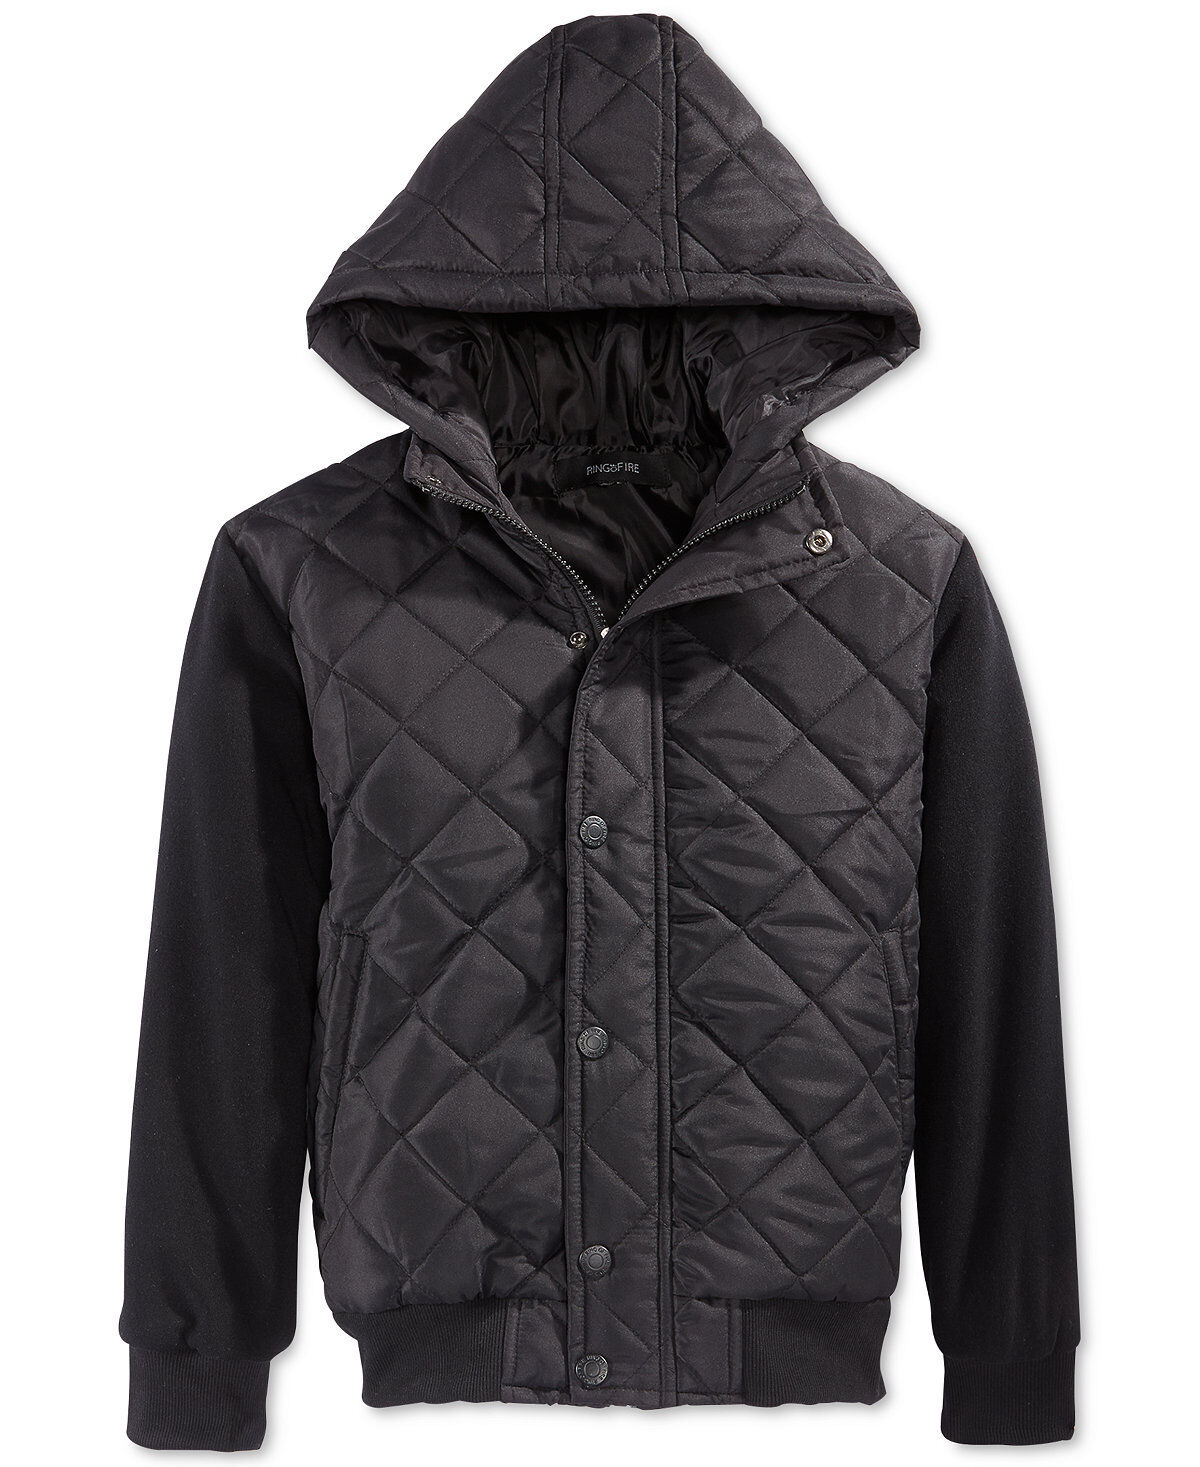 boys layered look quilted jacket